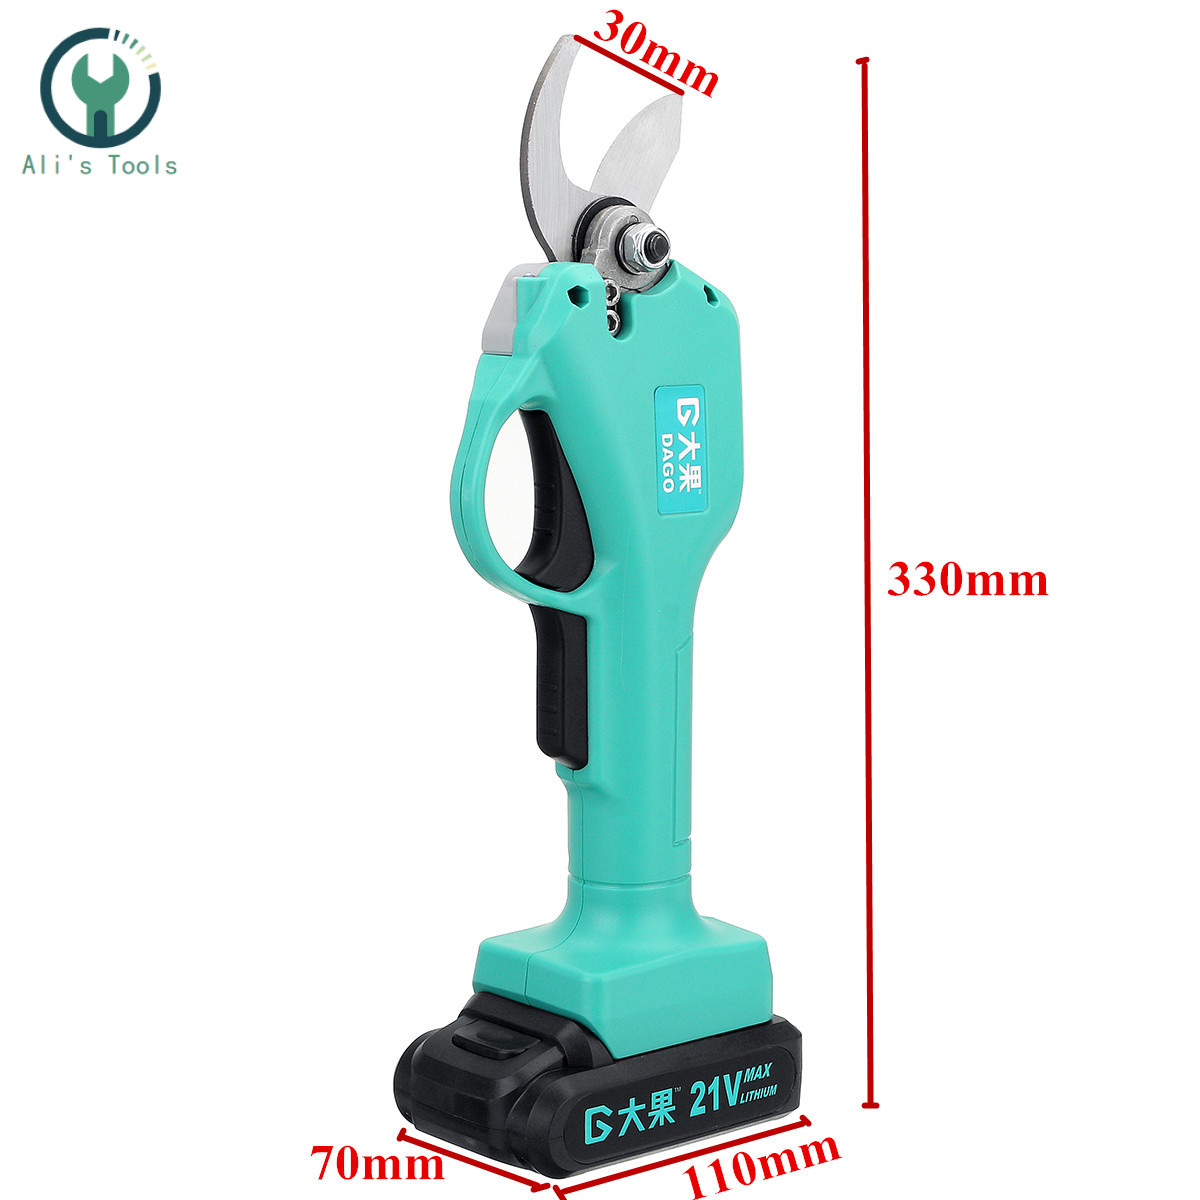 21V Wireless and Rechargeable Electric Garden Scissors for Pruning Branches with 30mm Maximum Cutting and 2 Li-ion Battery 4